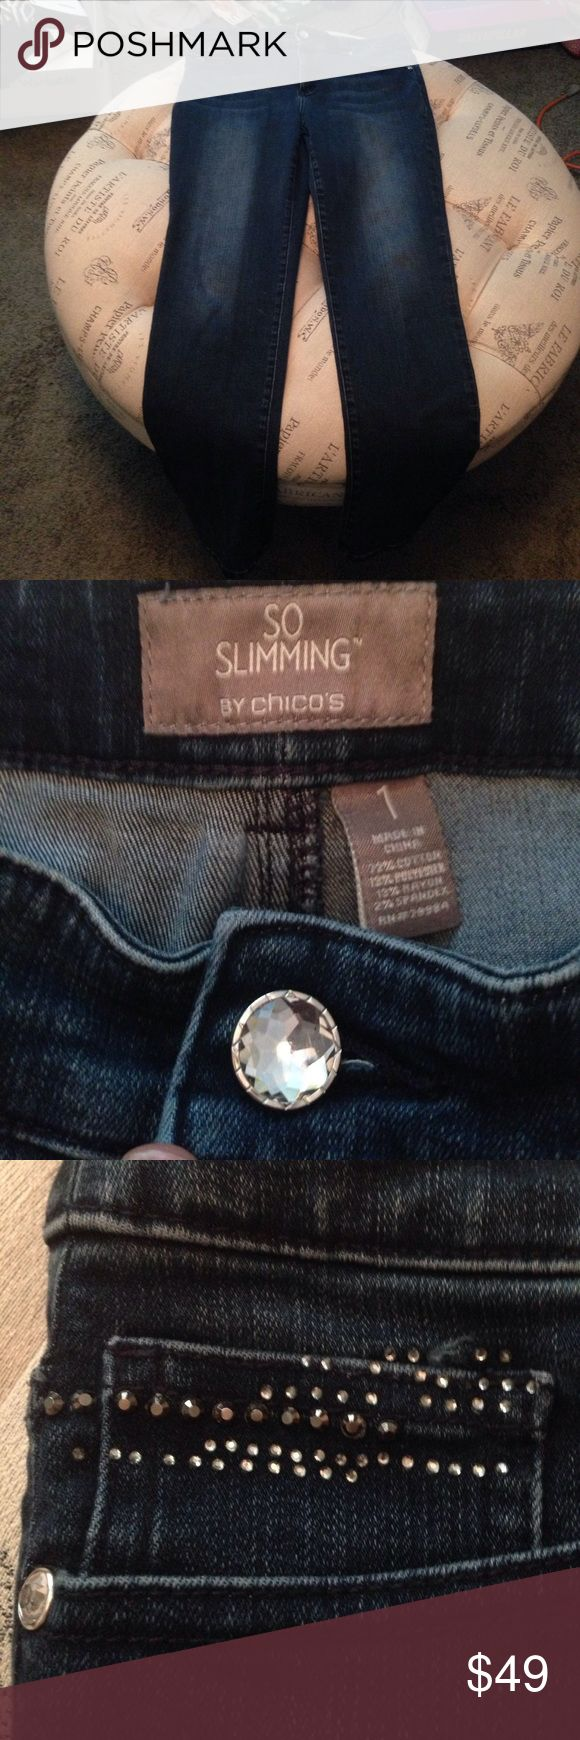 Chico's bling jeans size 1 In great condition So Slimming by Chico's dark denim jeans with bling details. The front pocket may be missing a few stones but cannot be sure so please see photo. This is Chico's size 1. Sku 829 Chico's Jeans